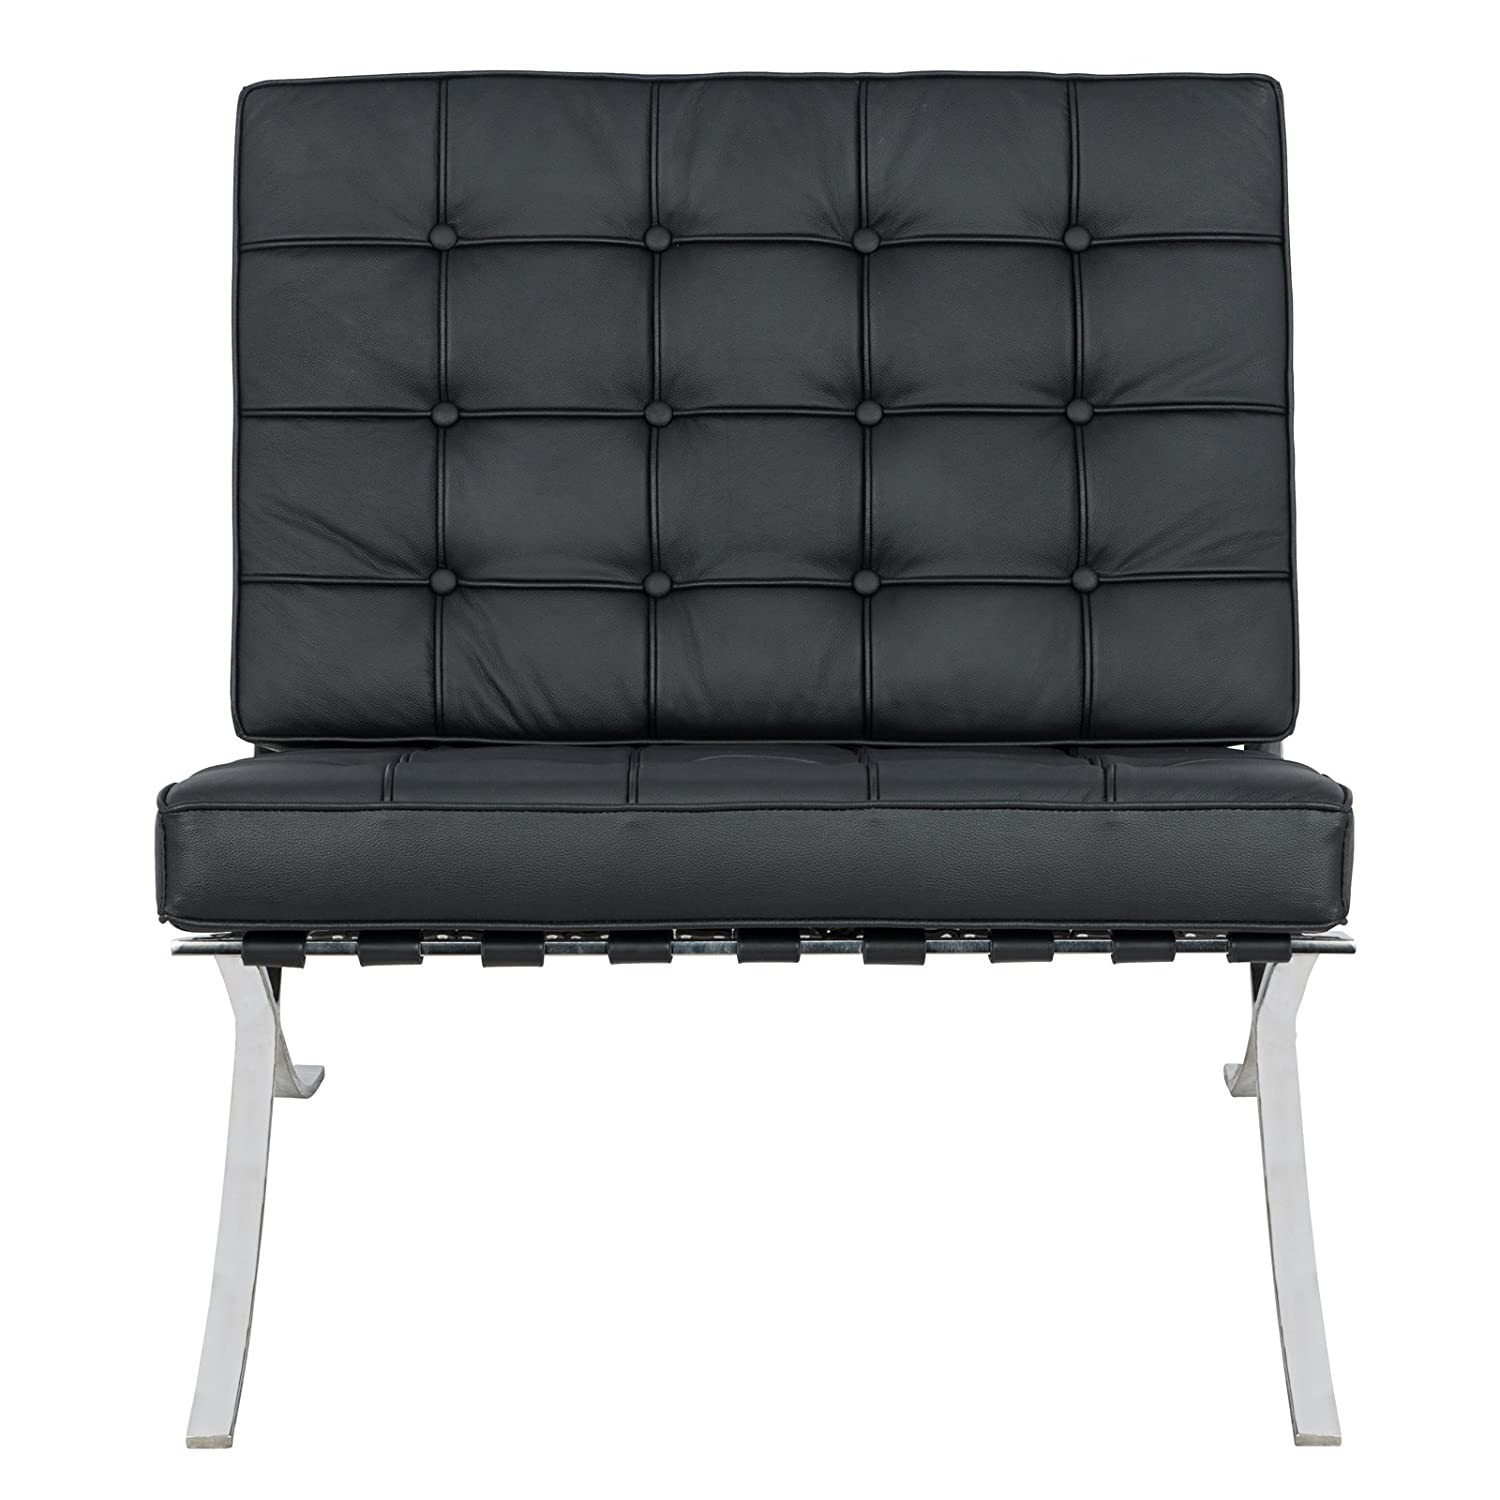 Amazon.com: LeisureMod Bellefonte Modern Leather Black ...